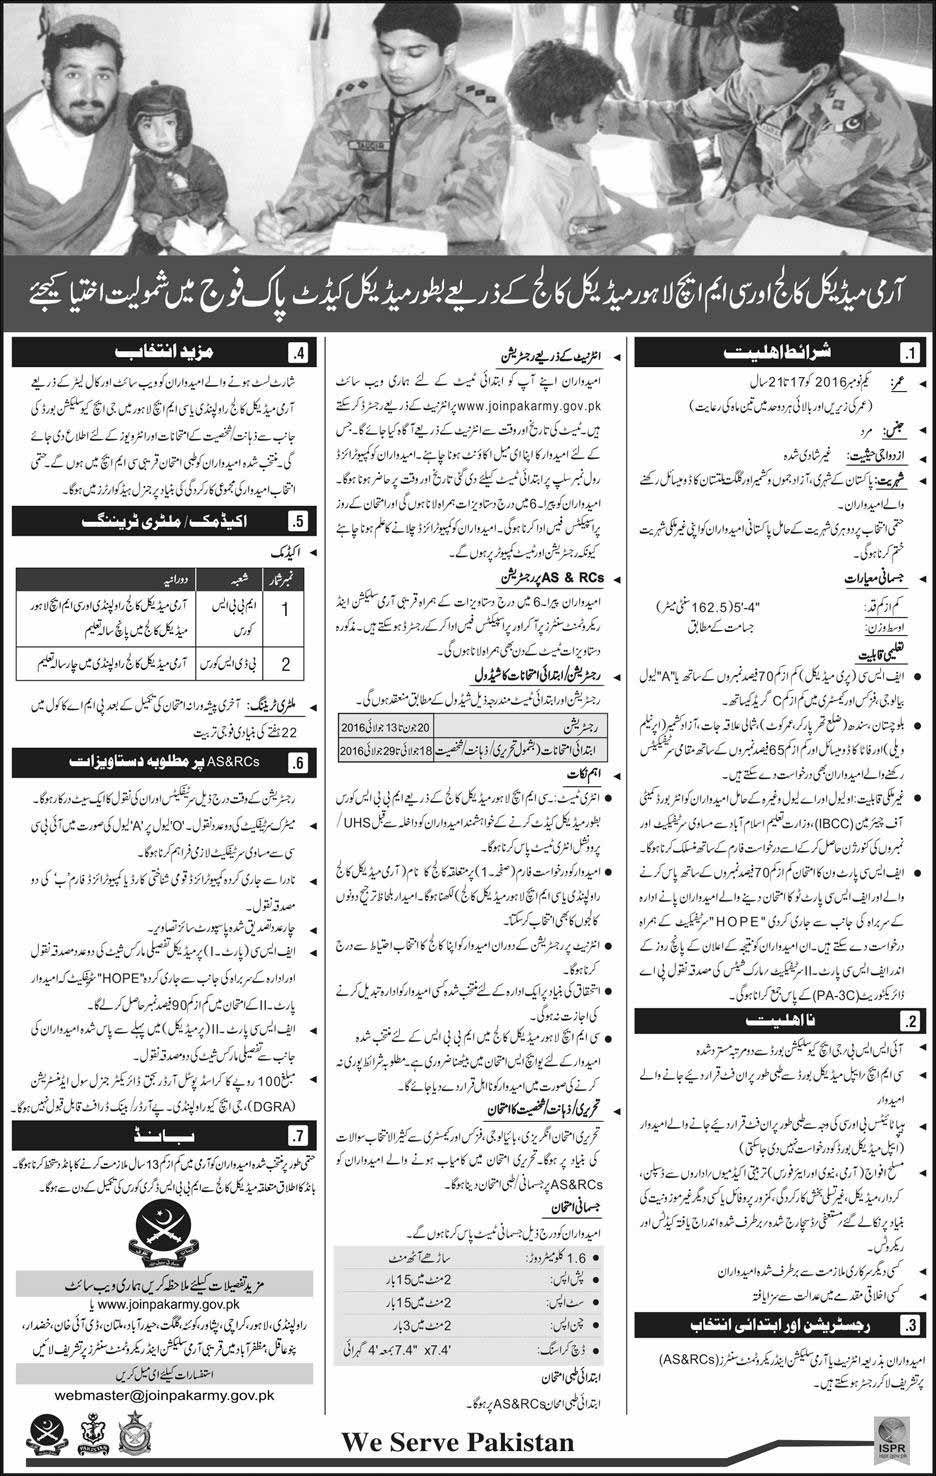 Join Pak Army as Medical Cadet Though Army Medical College